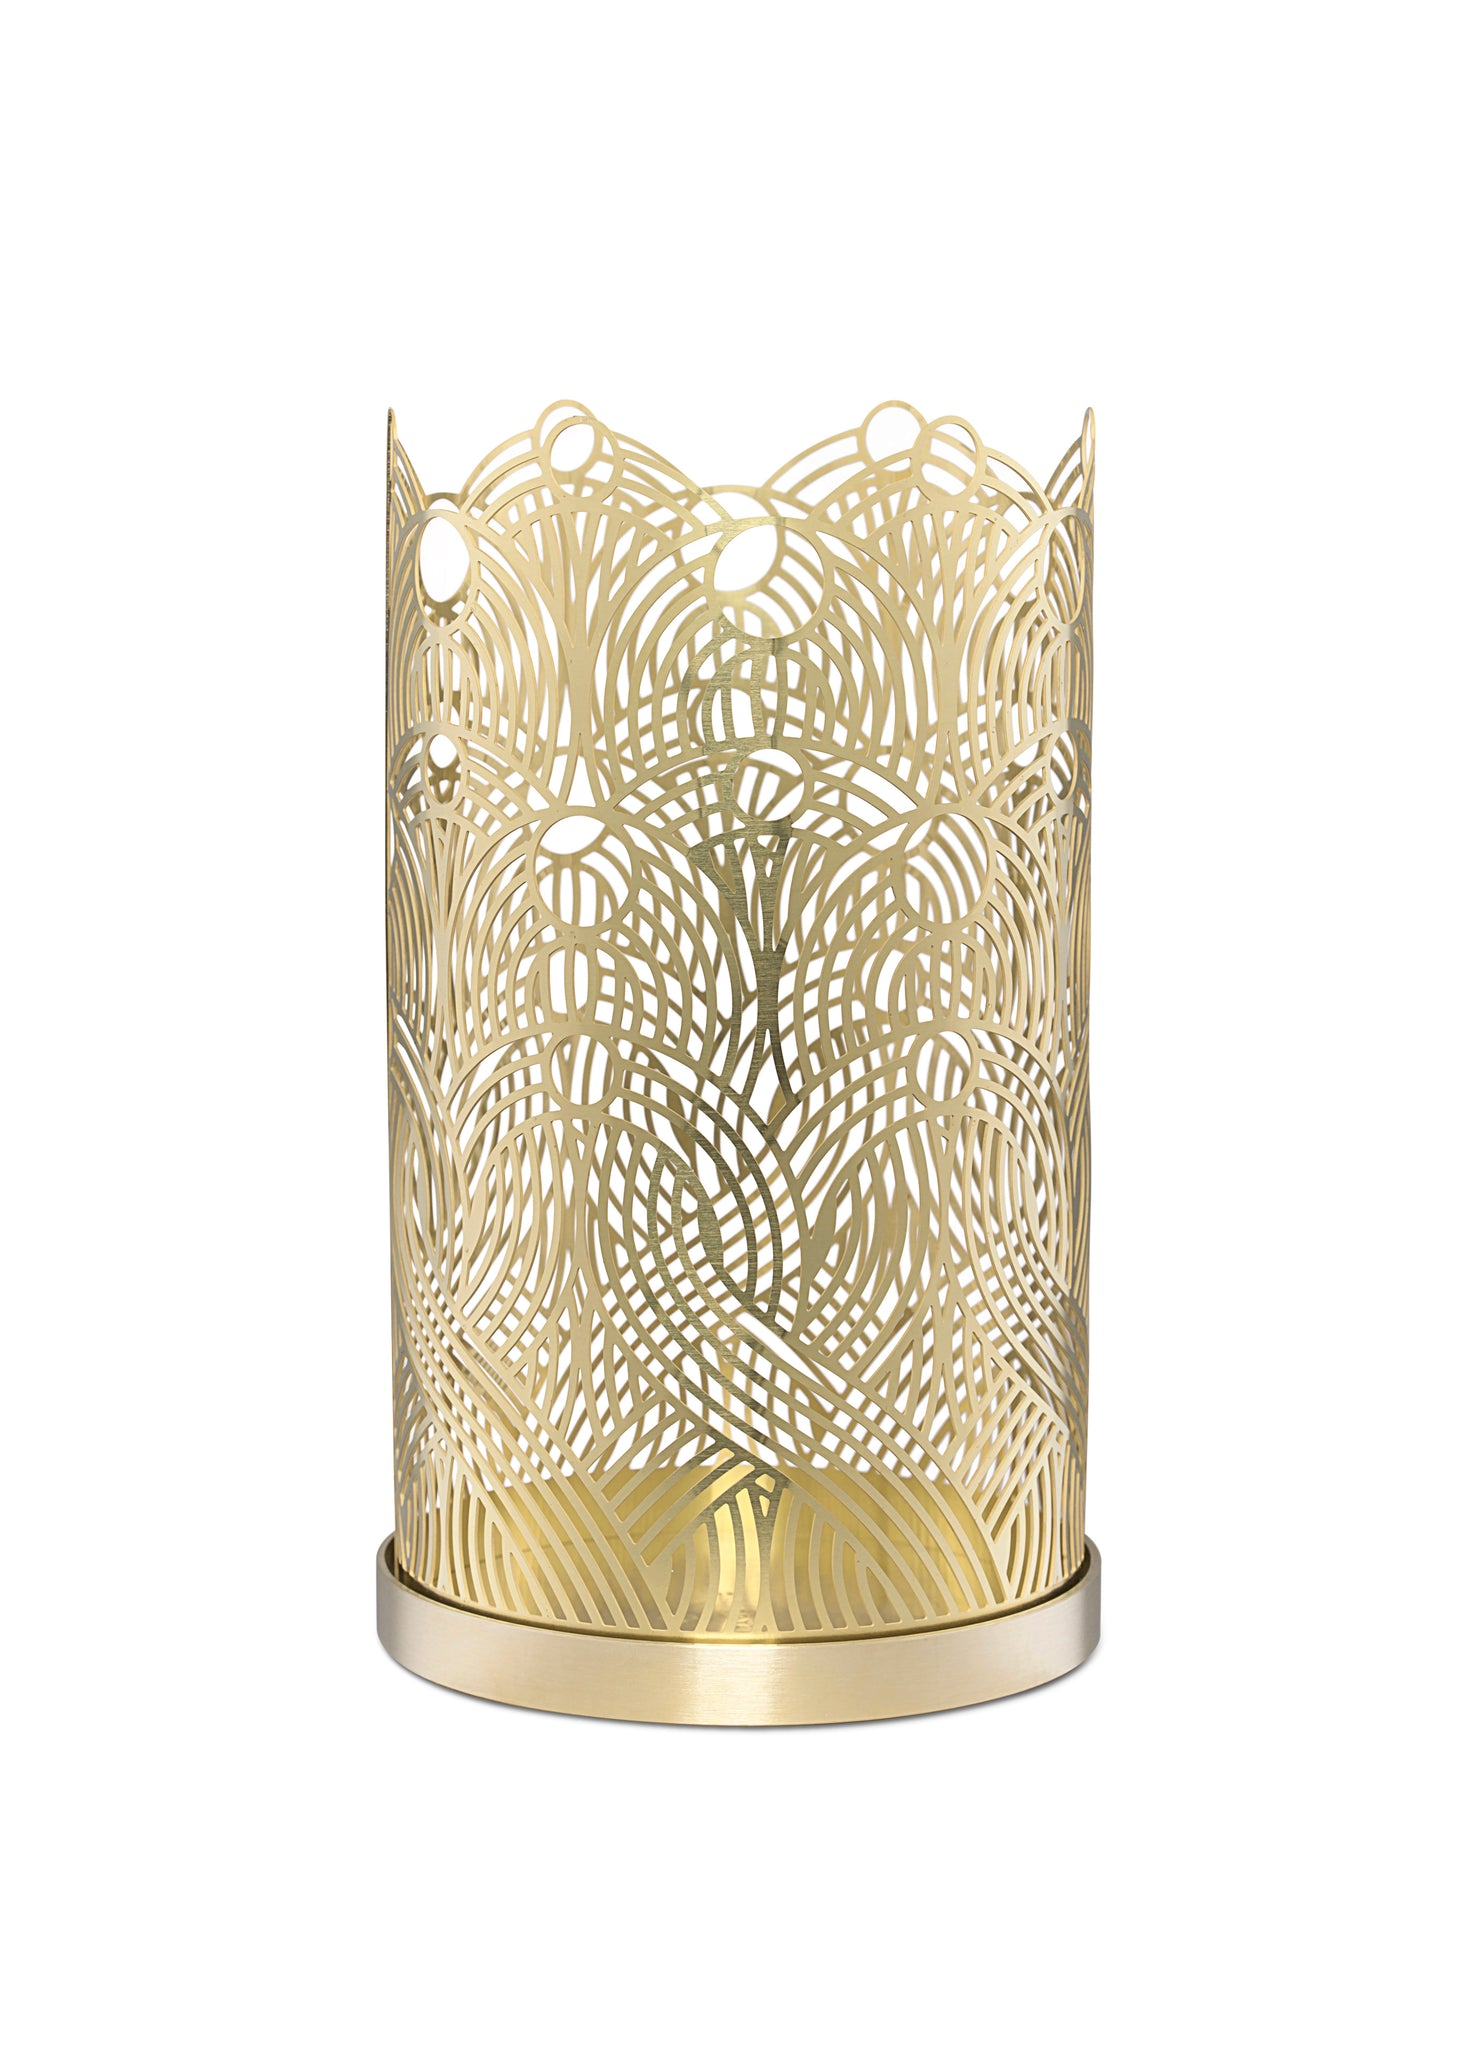 Skultuna Large Lunar Candle Holder in Brass